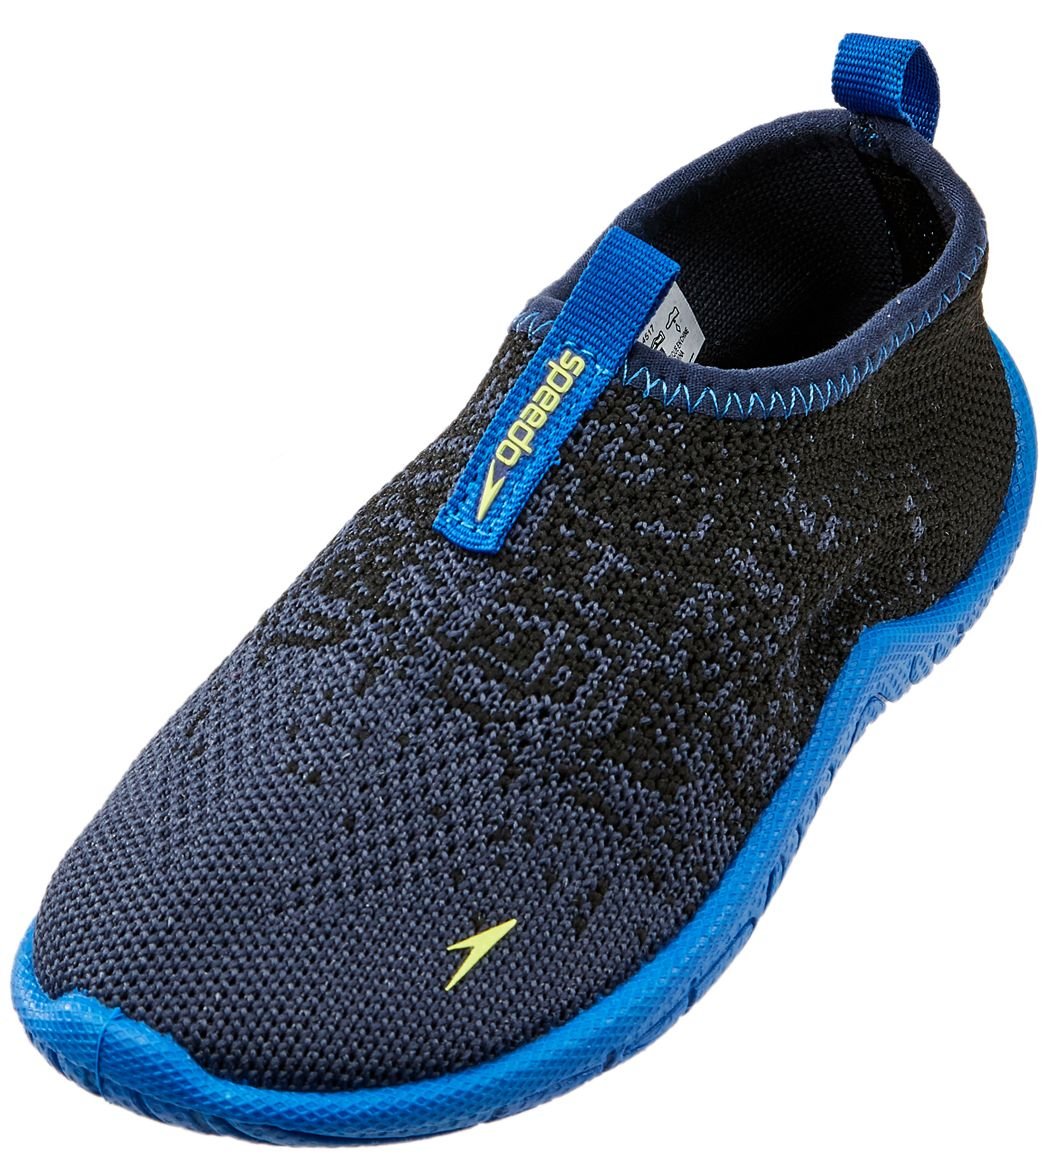 815c4a8e1134 Speedo Kids  Surf Knit Water Shoe (Toddler) at SwimOutlet.com